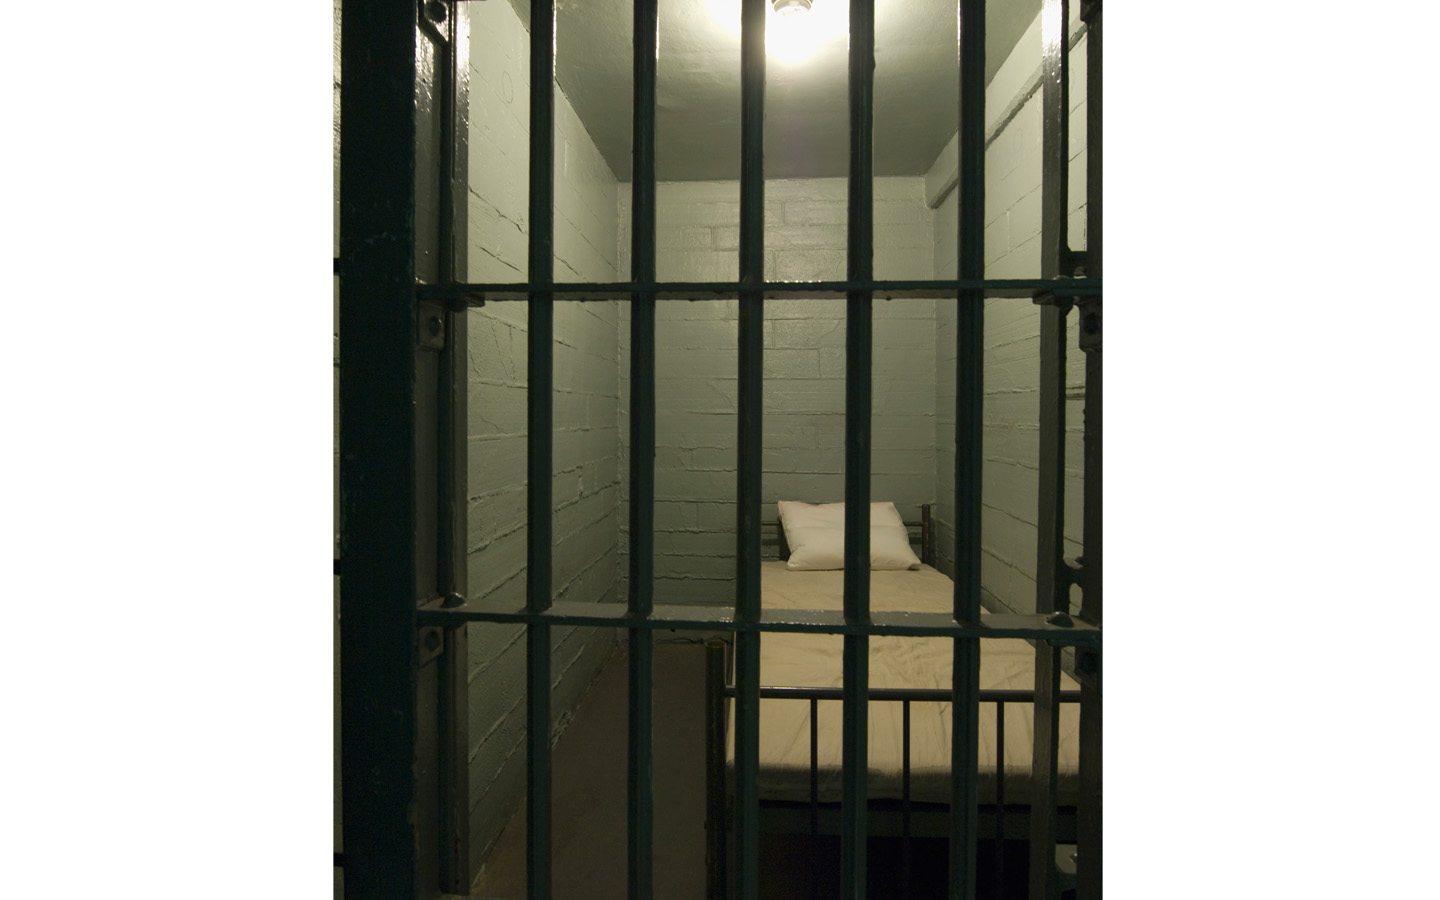 JailCellBed2Museum1440PX1.jpg